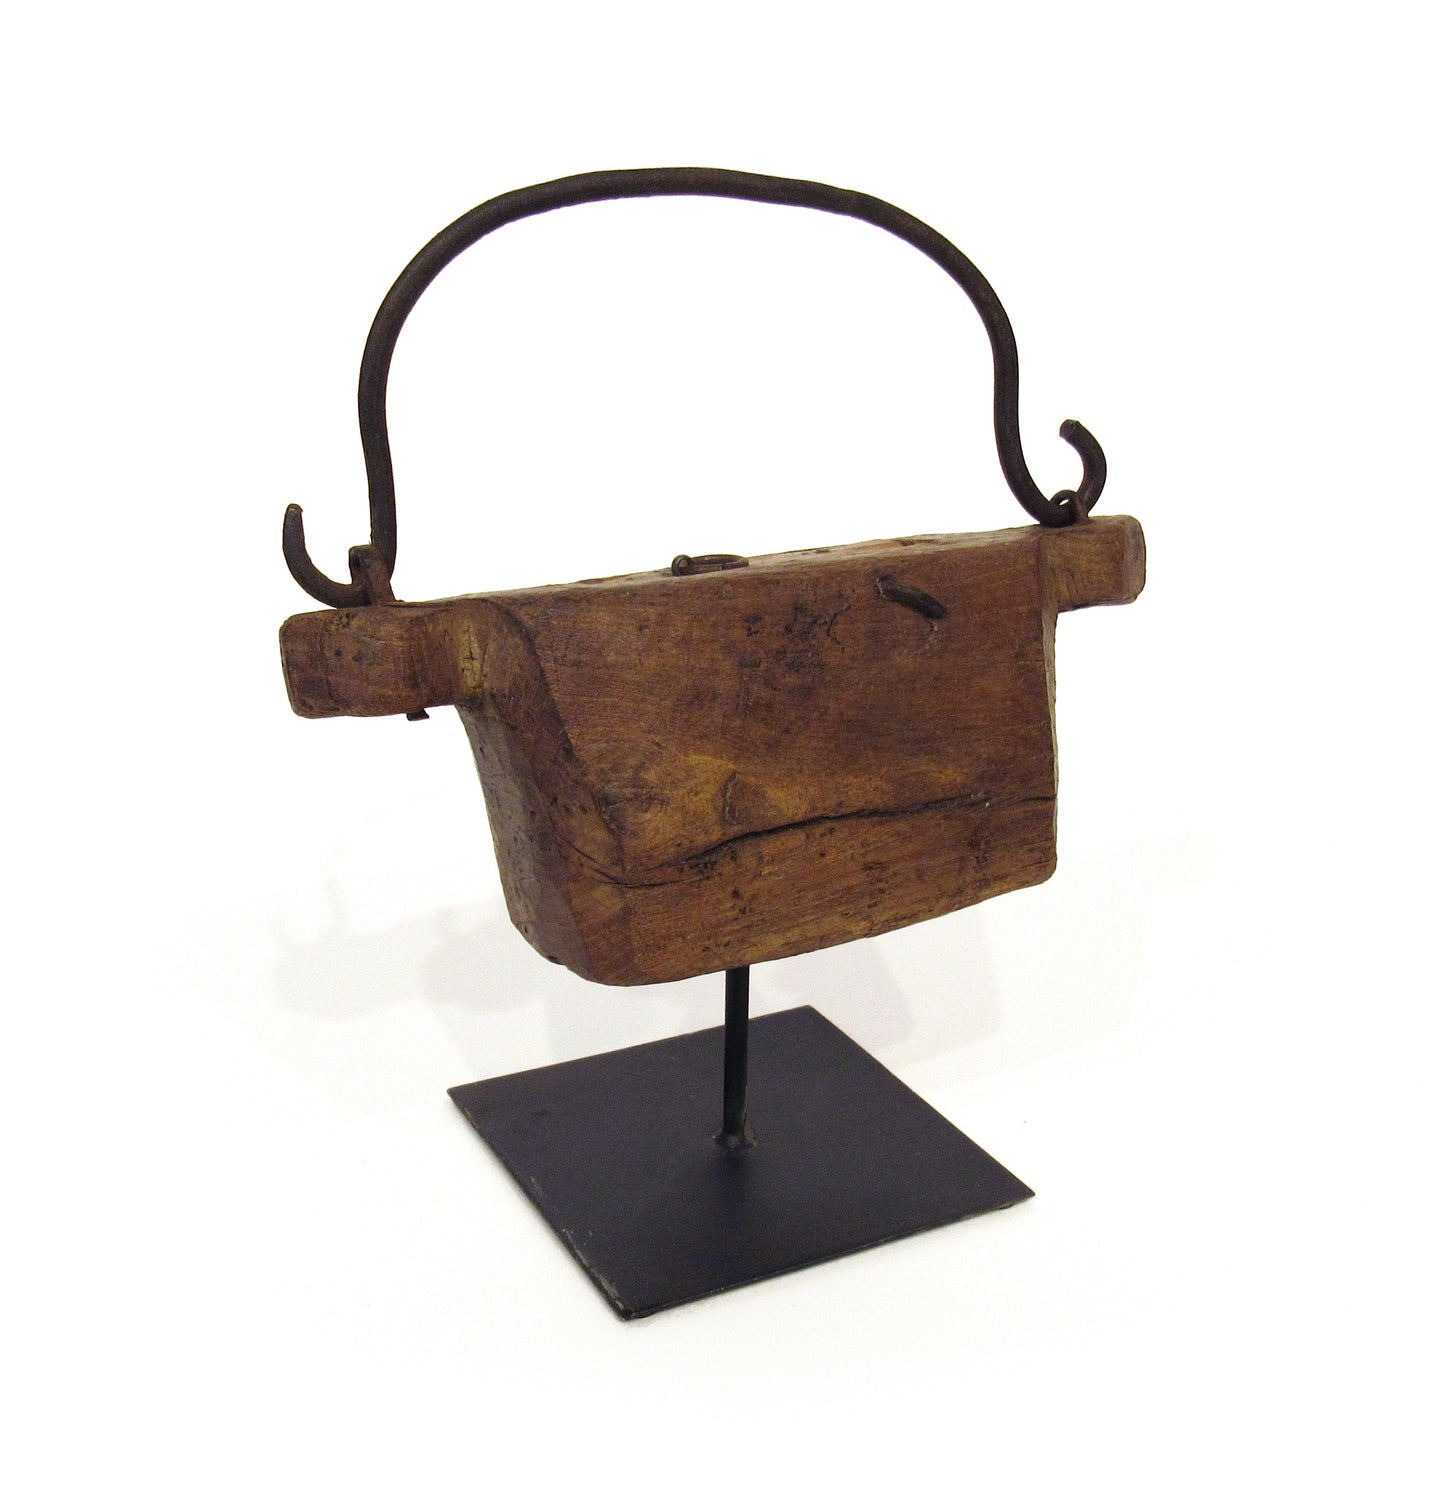 Vintage Spice Purse on Stand